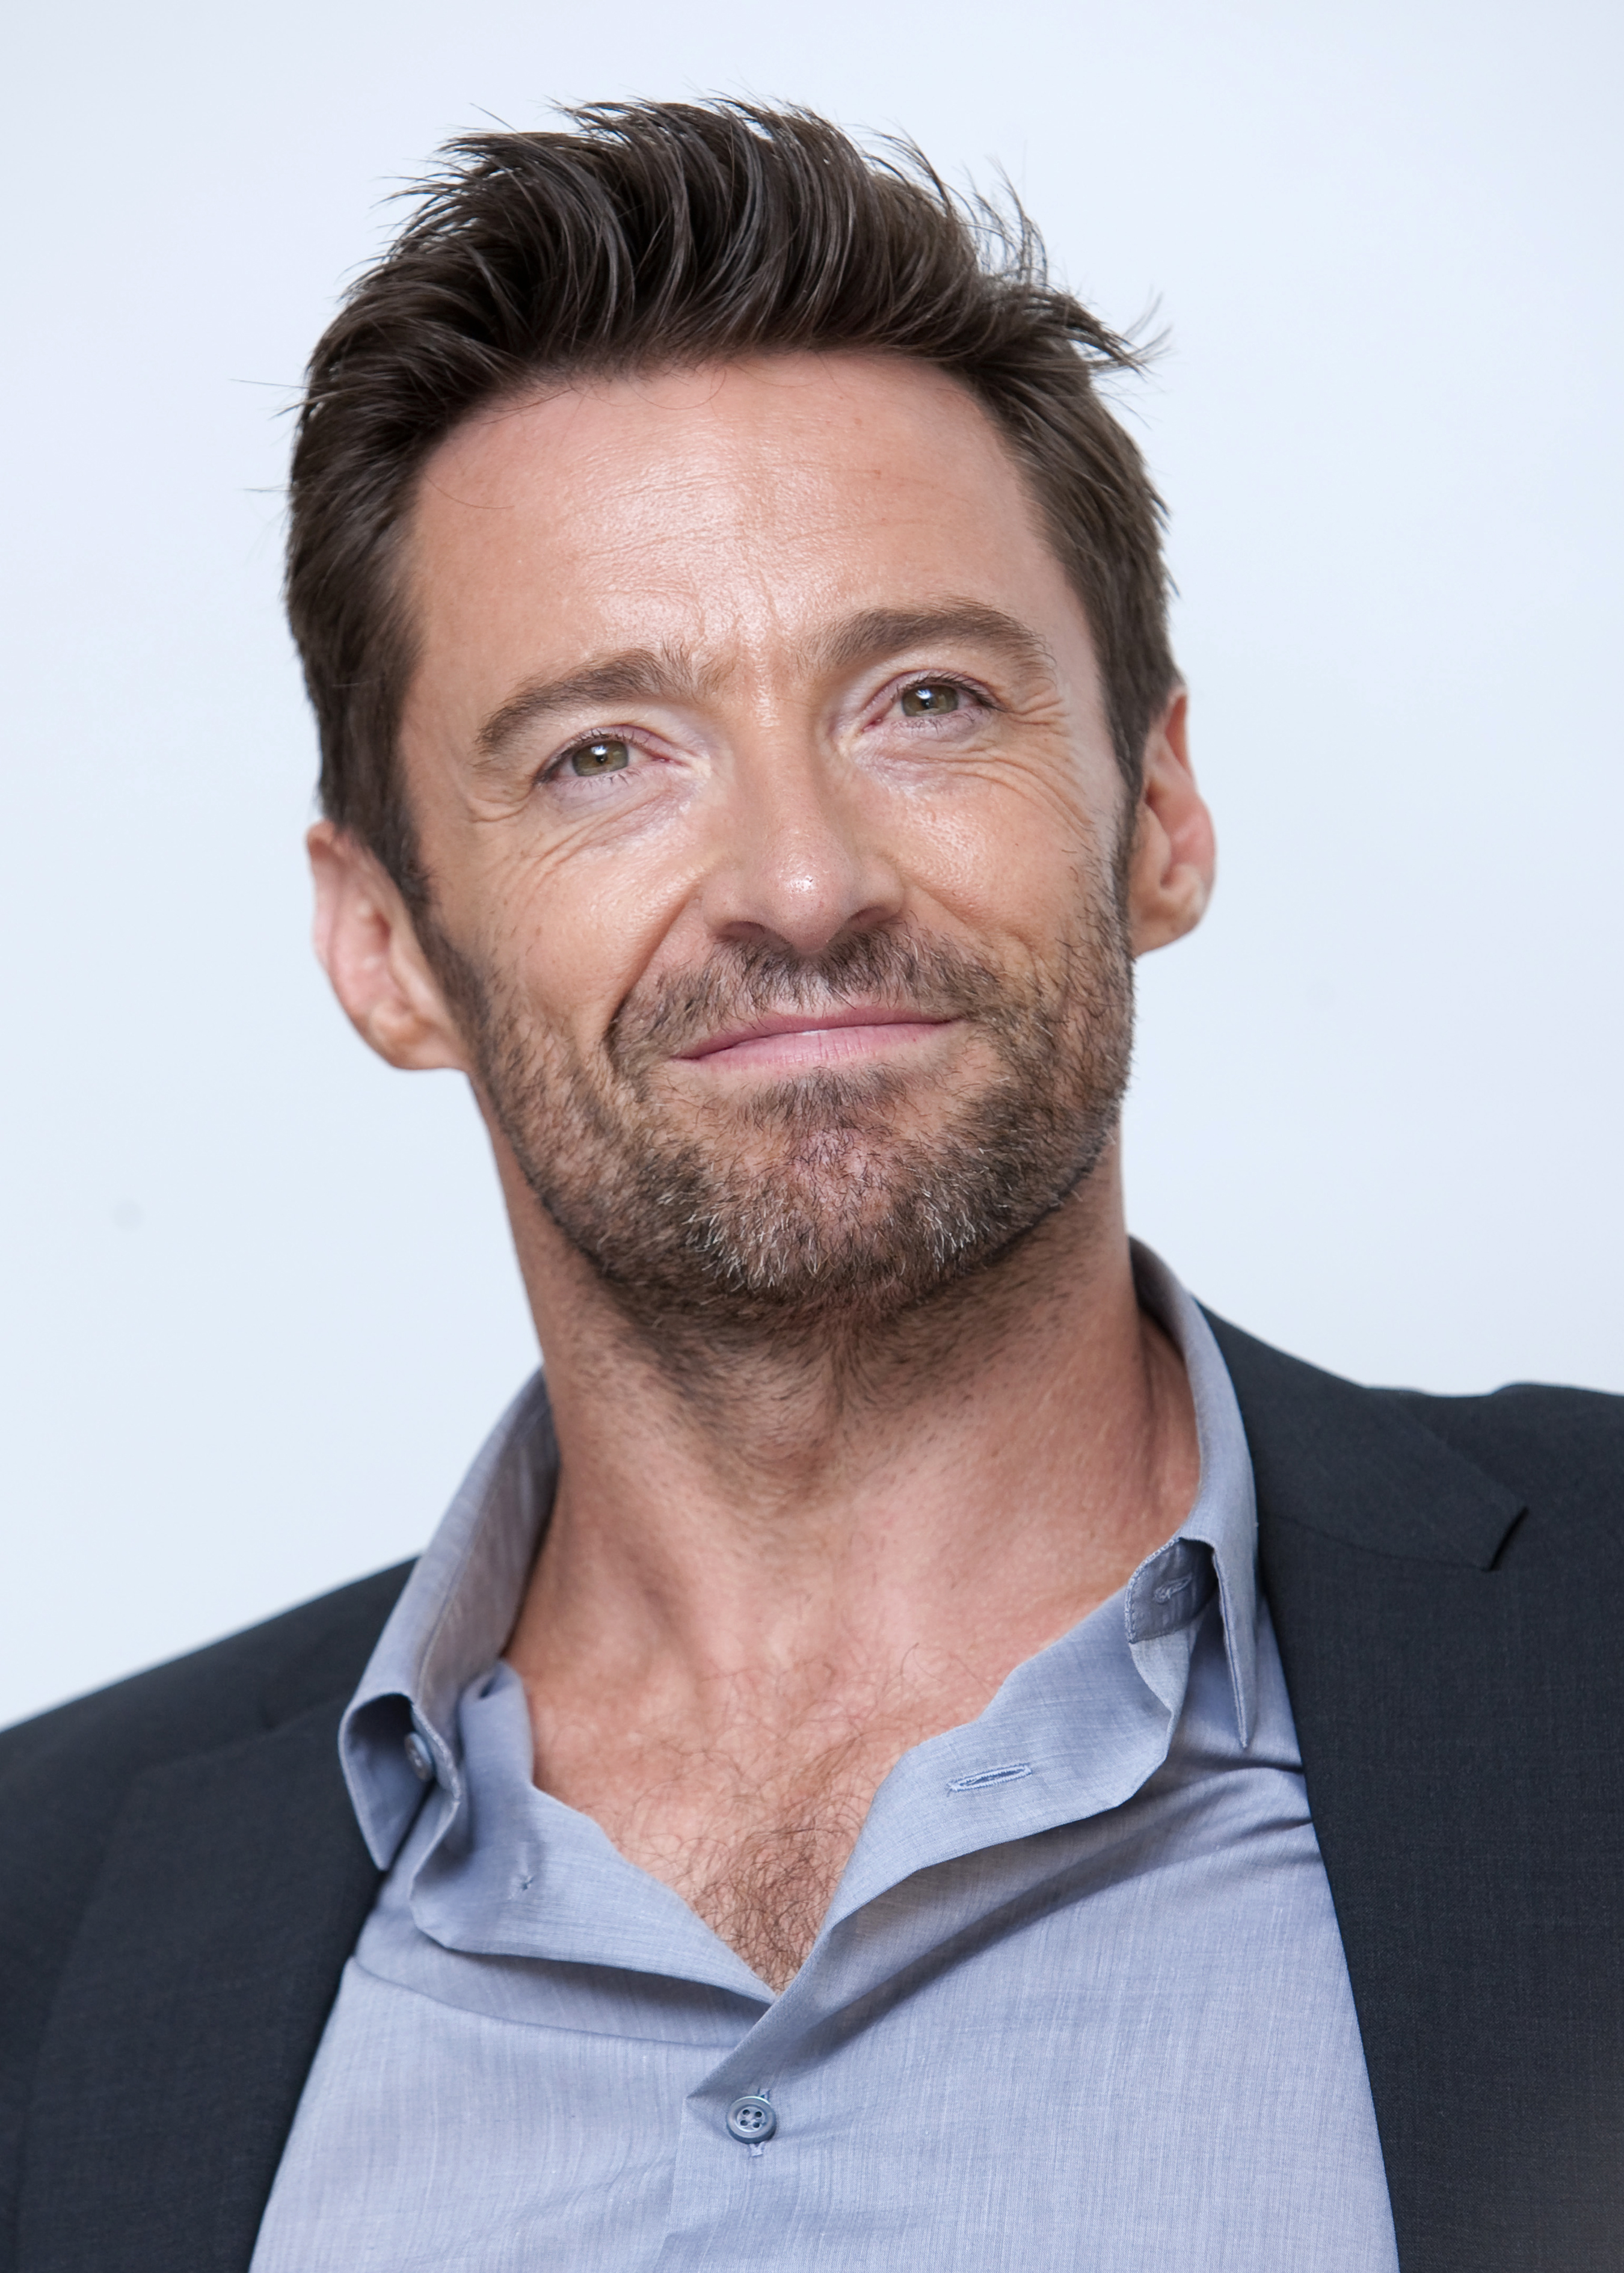 Hugh jackman nekad, very young girl pussy picture